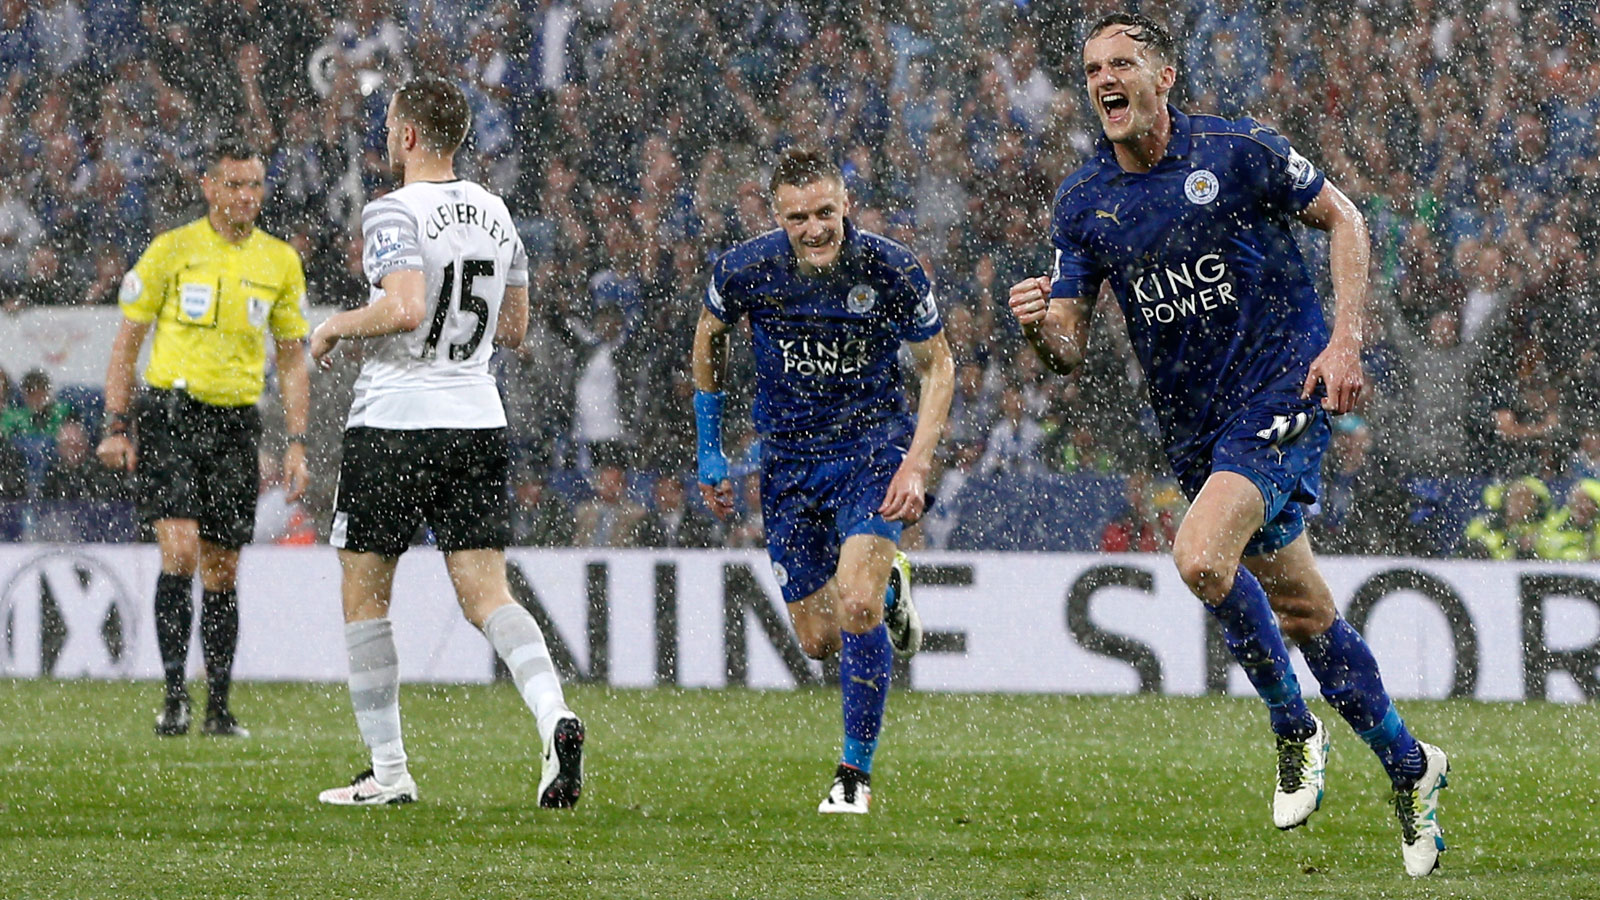 Andy King, the last holdover from Leicester's third-tier, League One club in 2008, celebrates his goal vs. Everton in the pouring rain.